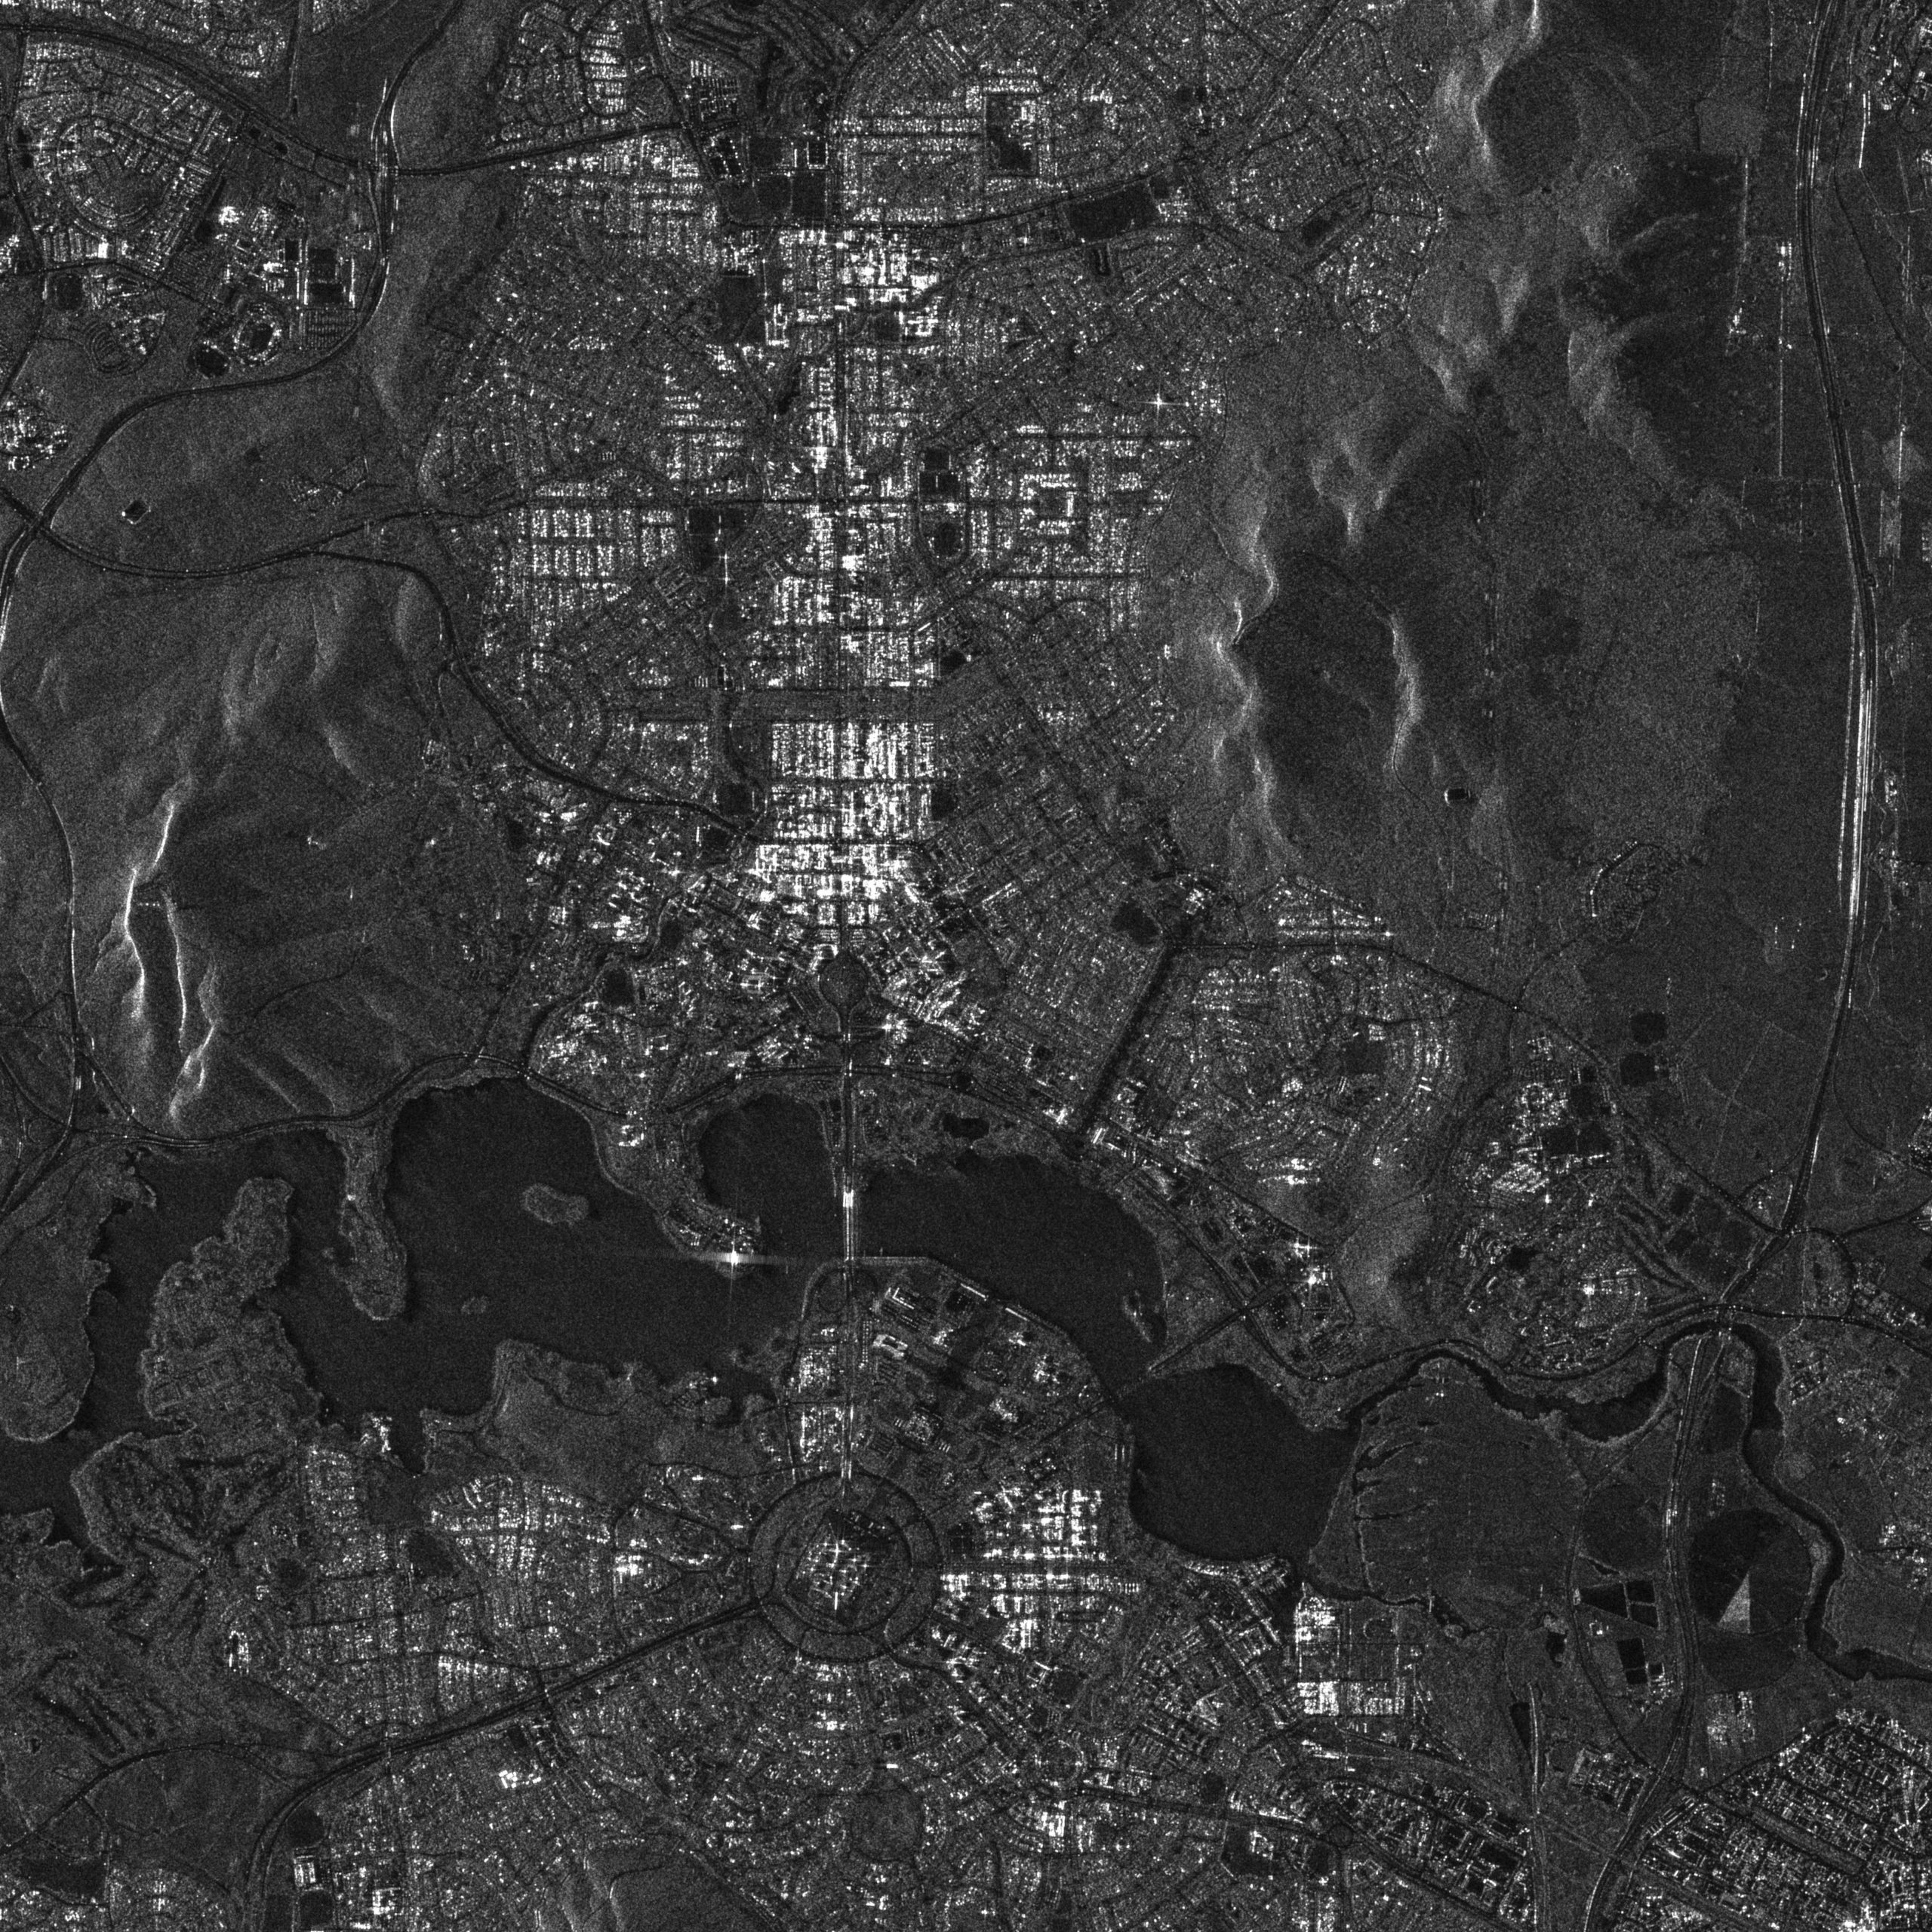 black and white aerial shot of Canberra